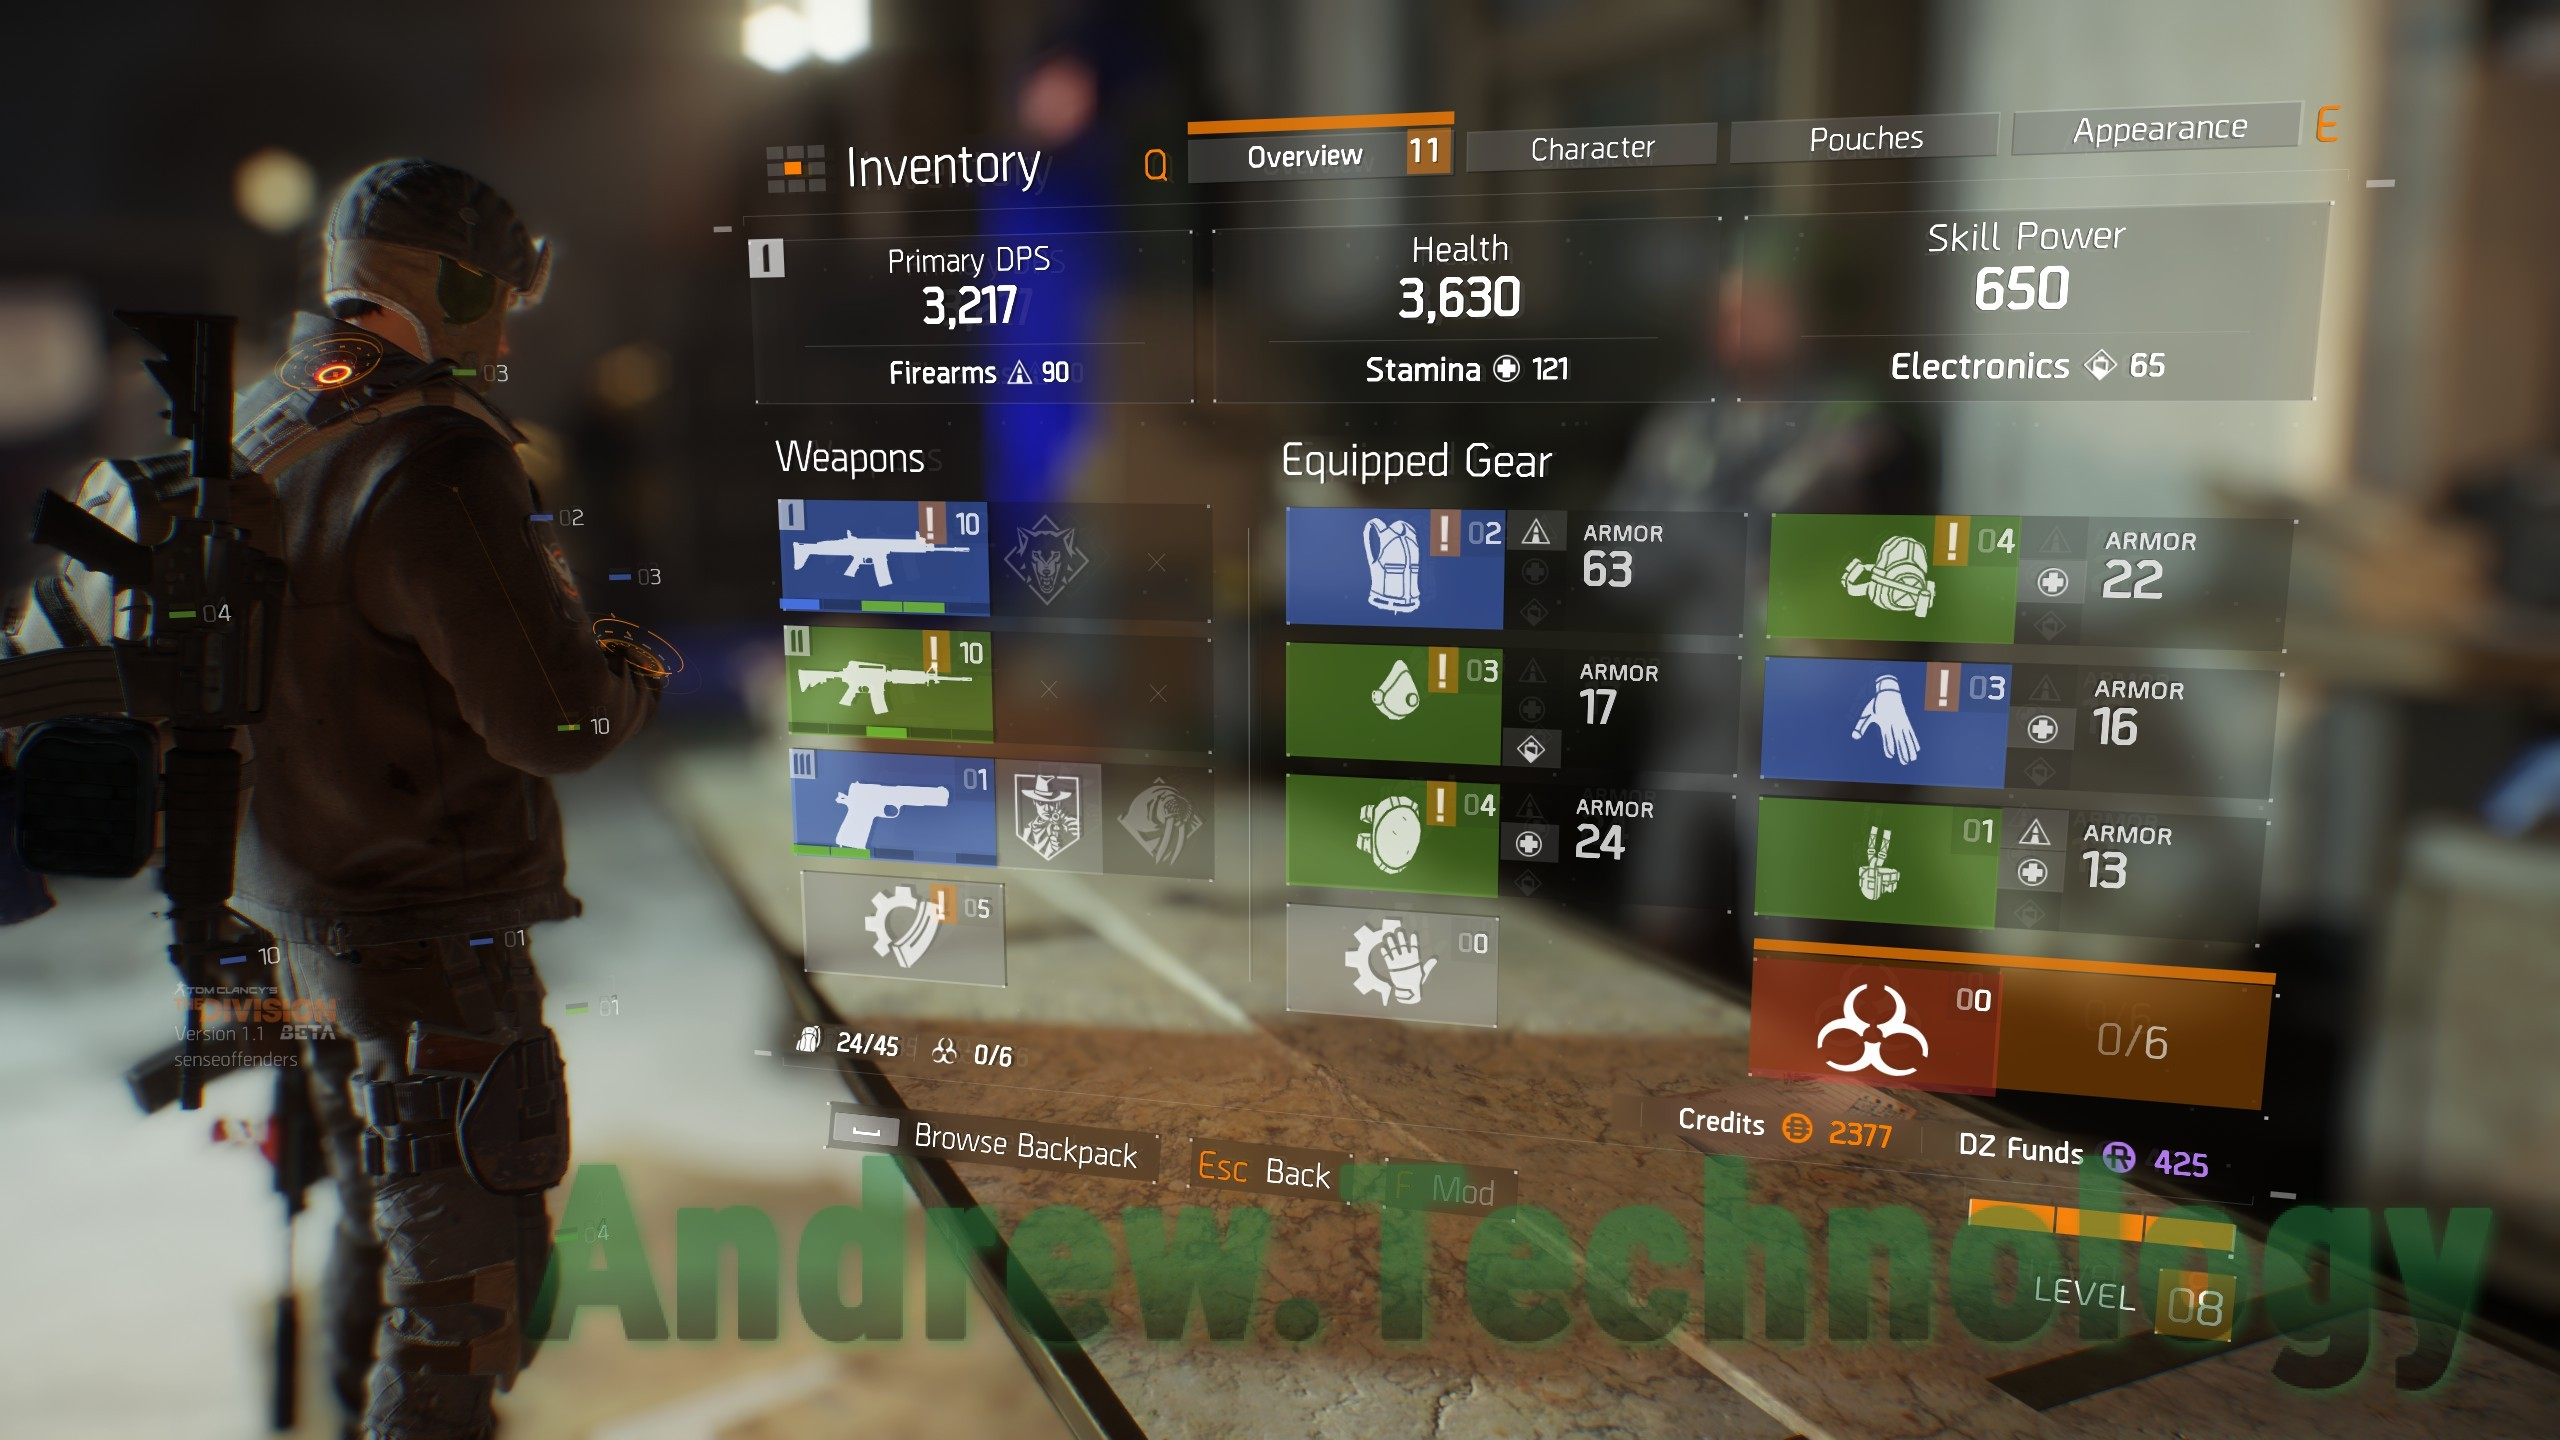 The Divison Overview Inventory Menu with Equipment Guns and Gears Firearms, Stamina, and Electronics are Stats